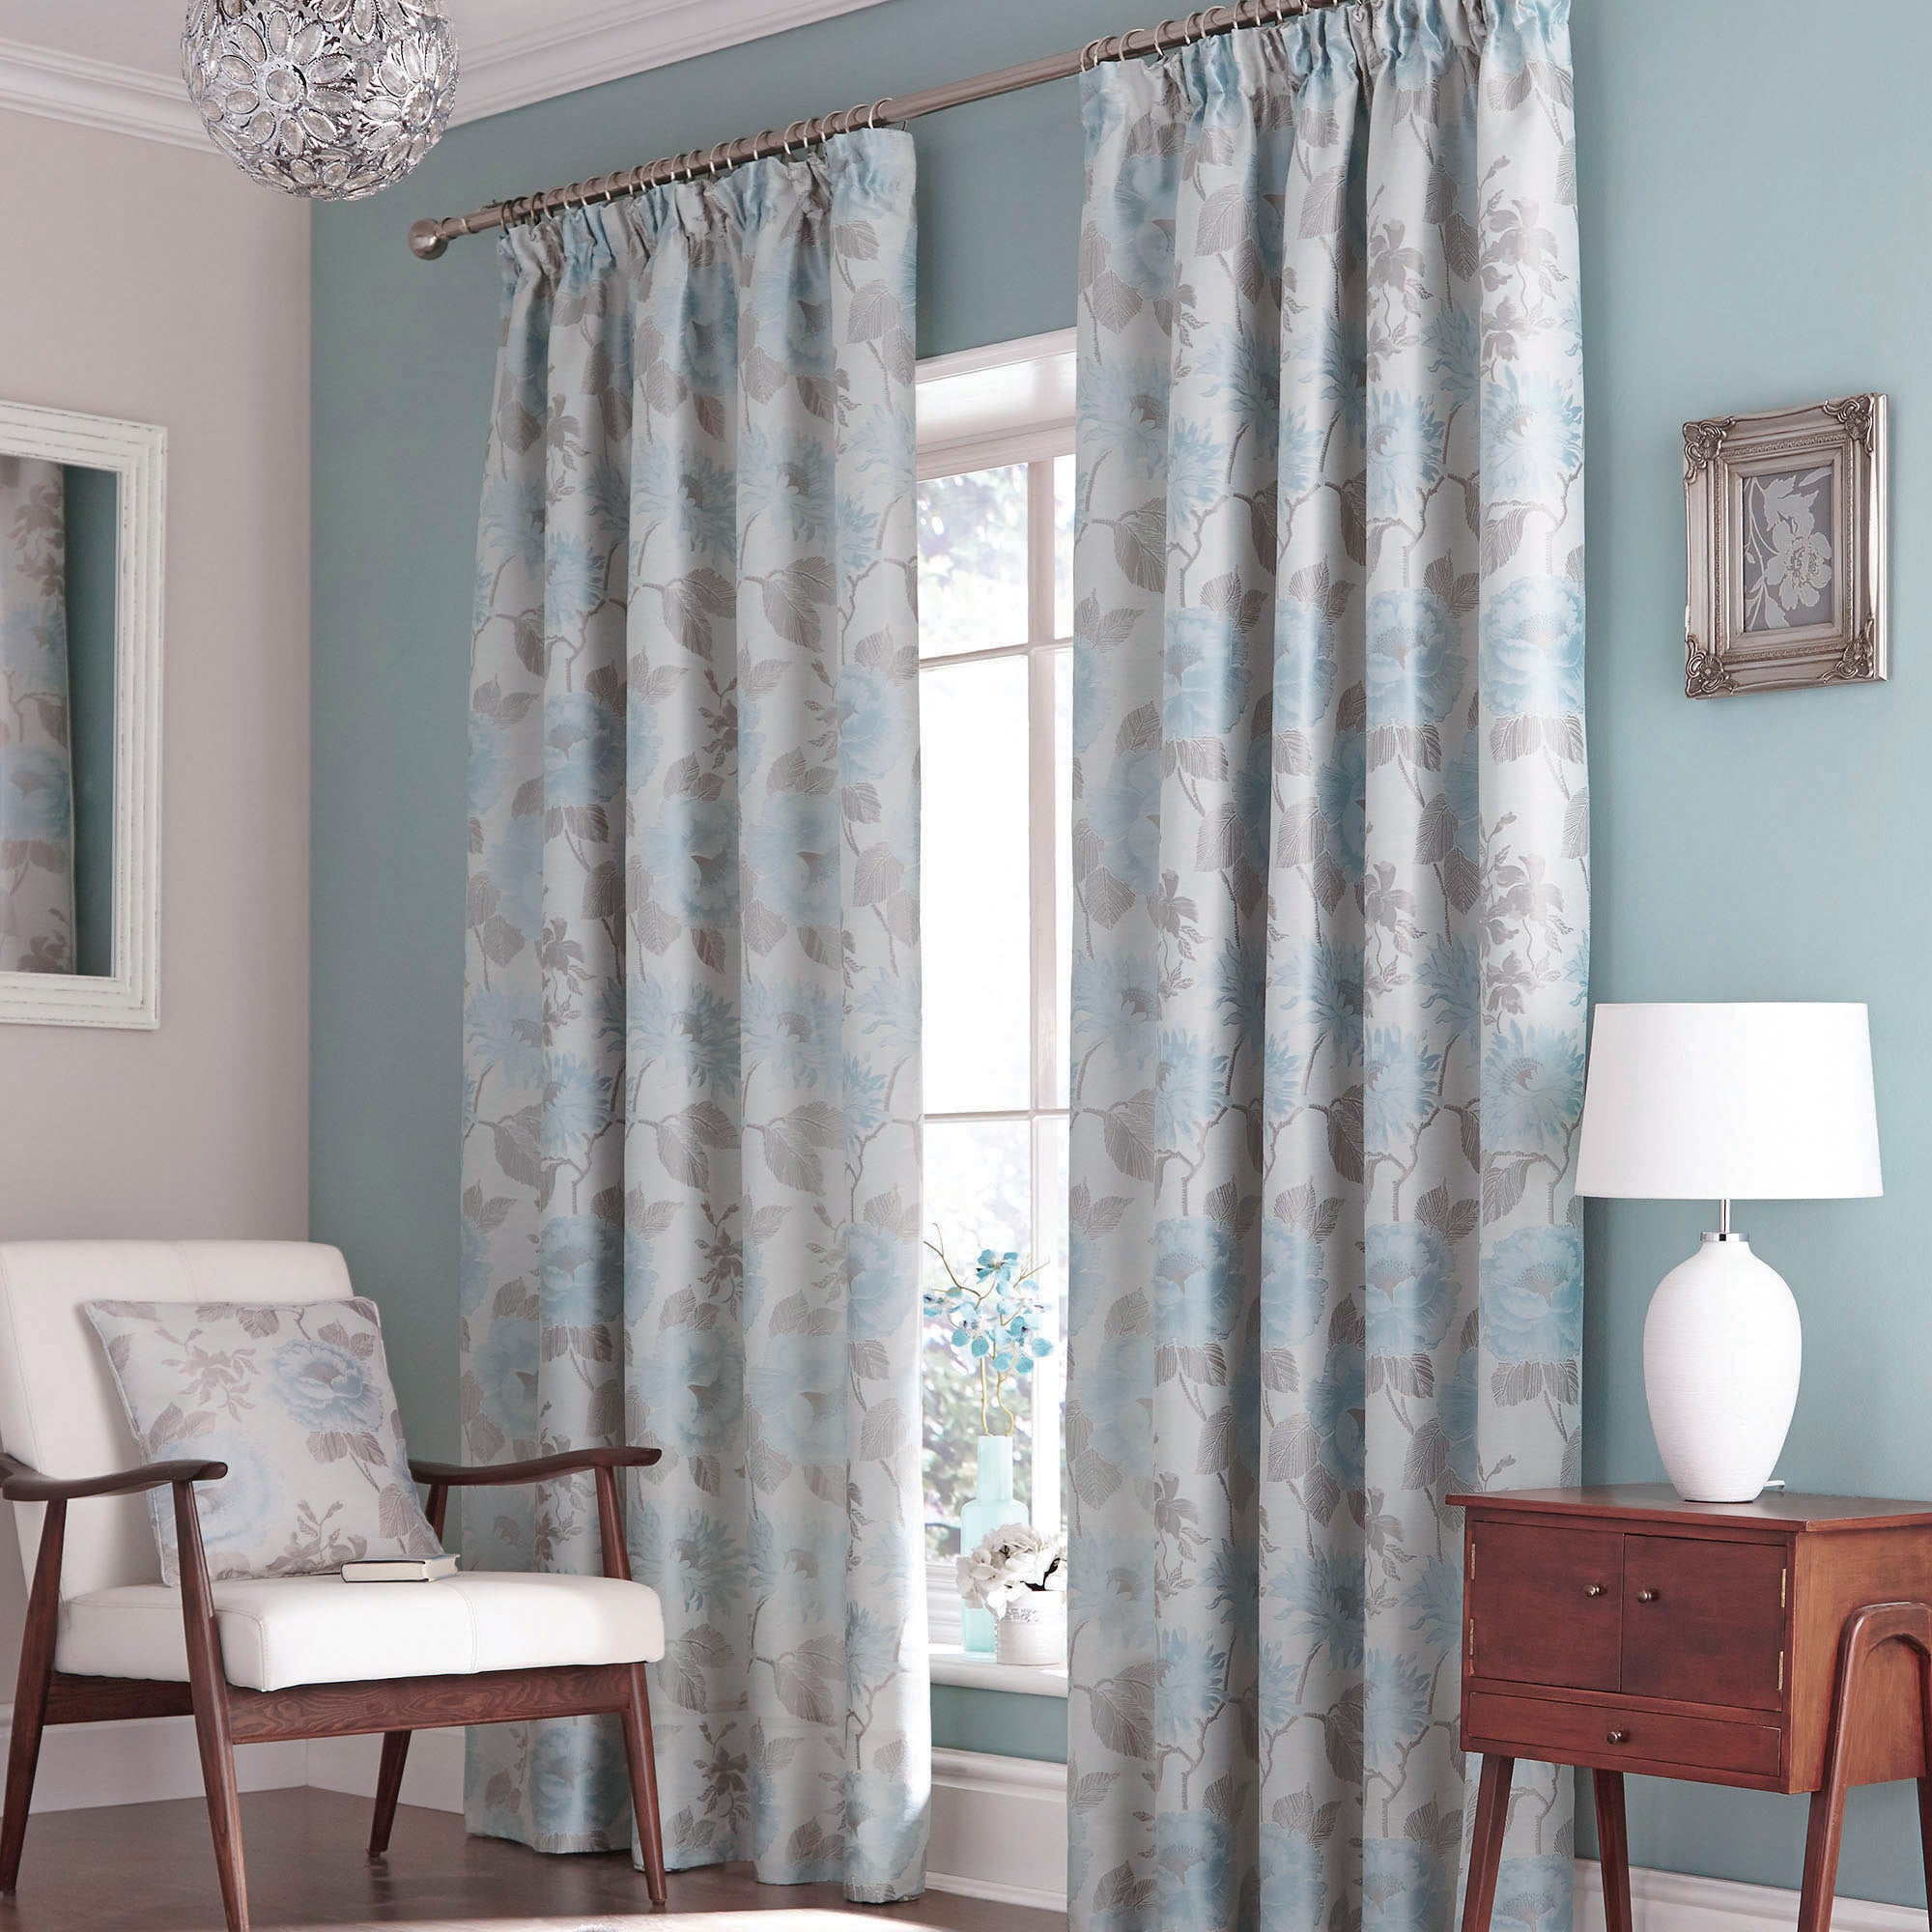 Buy cheap duck egg curtains compare curtains blinds for Space fabric dunelm